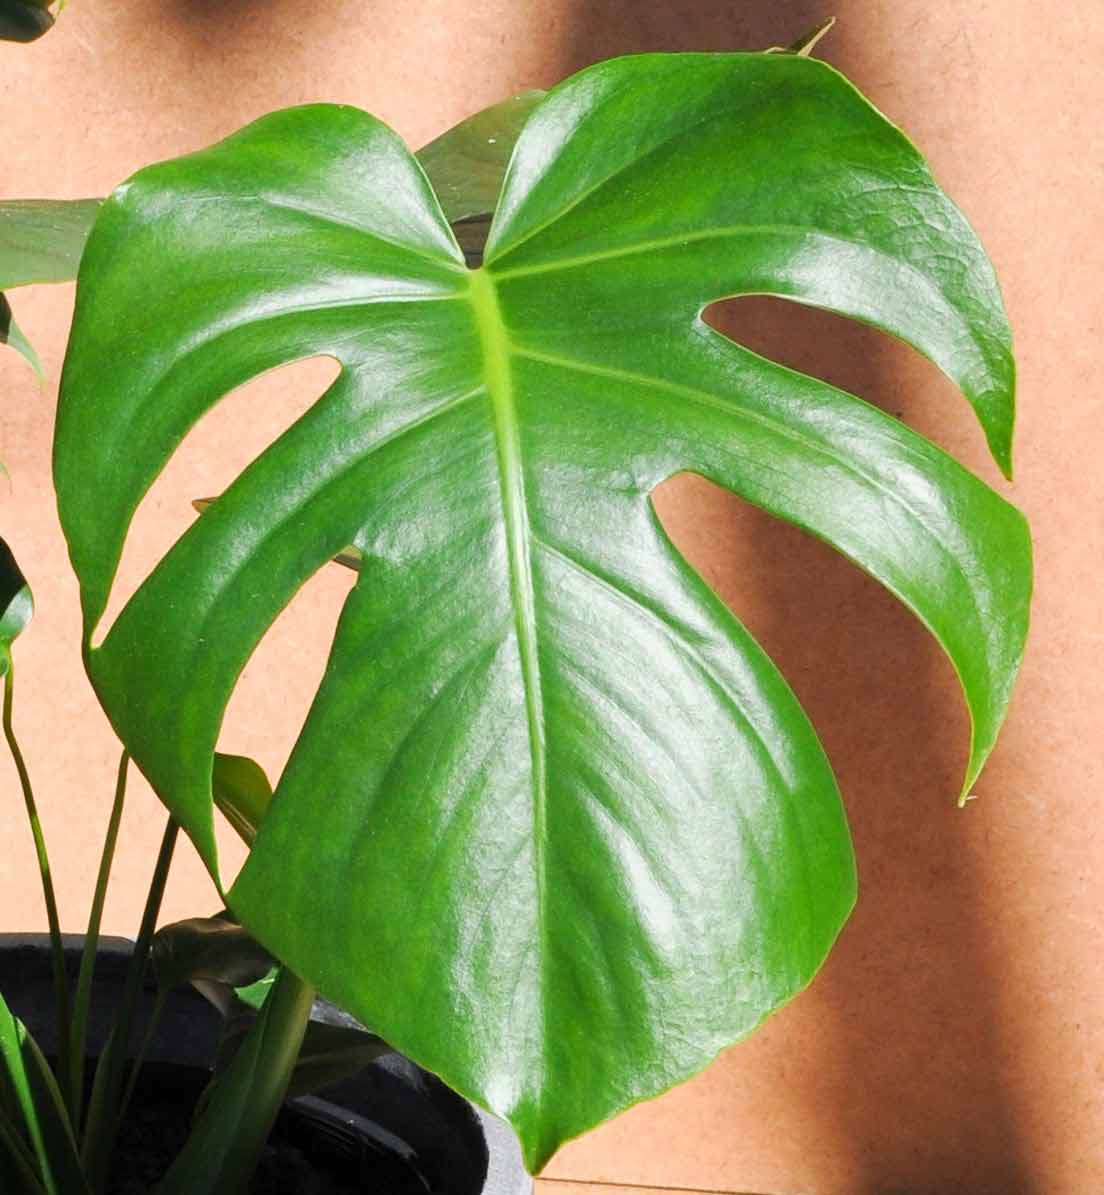 Monstera Deliciosa:Care 101 - Move over Fiddle-Leaf fig, it's time to shine light on the Monstera!